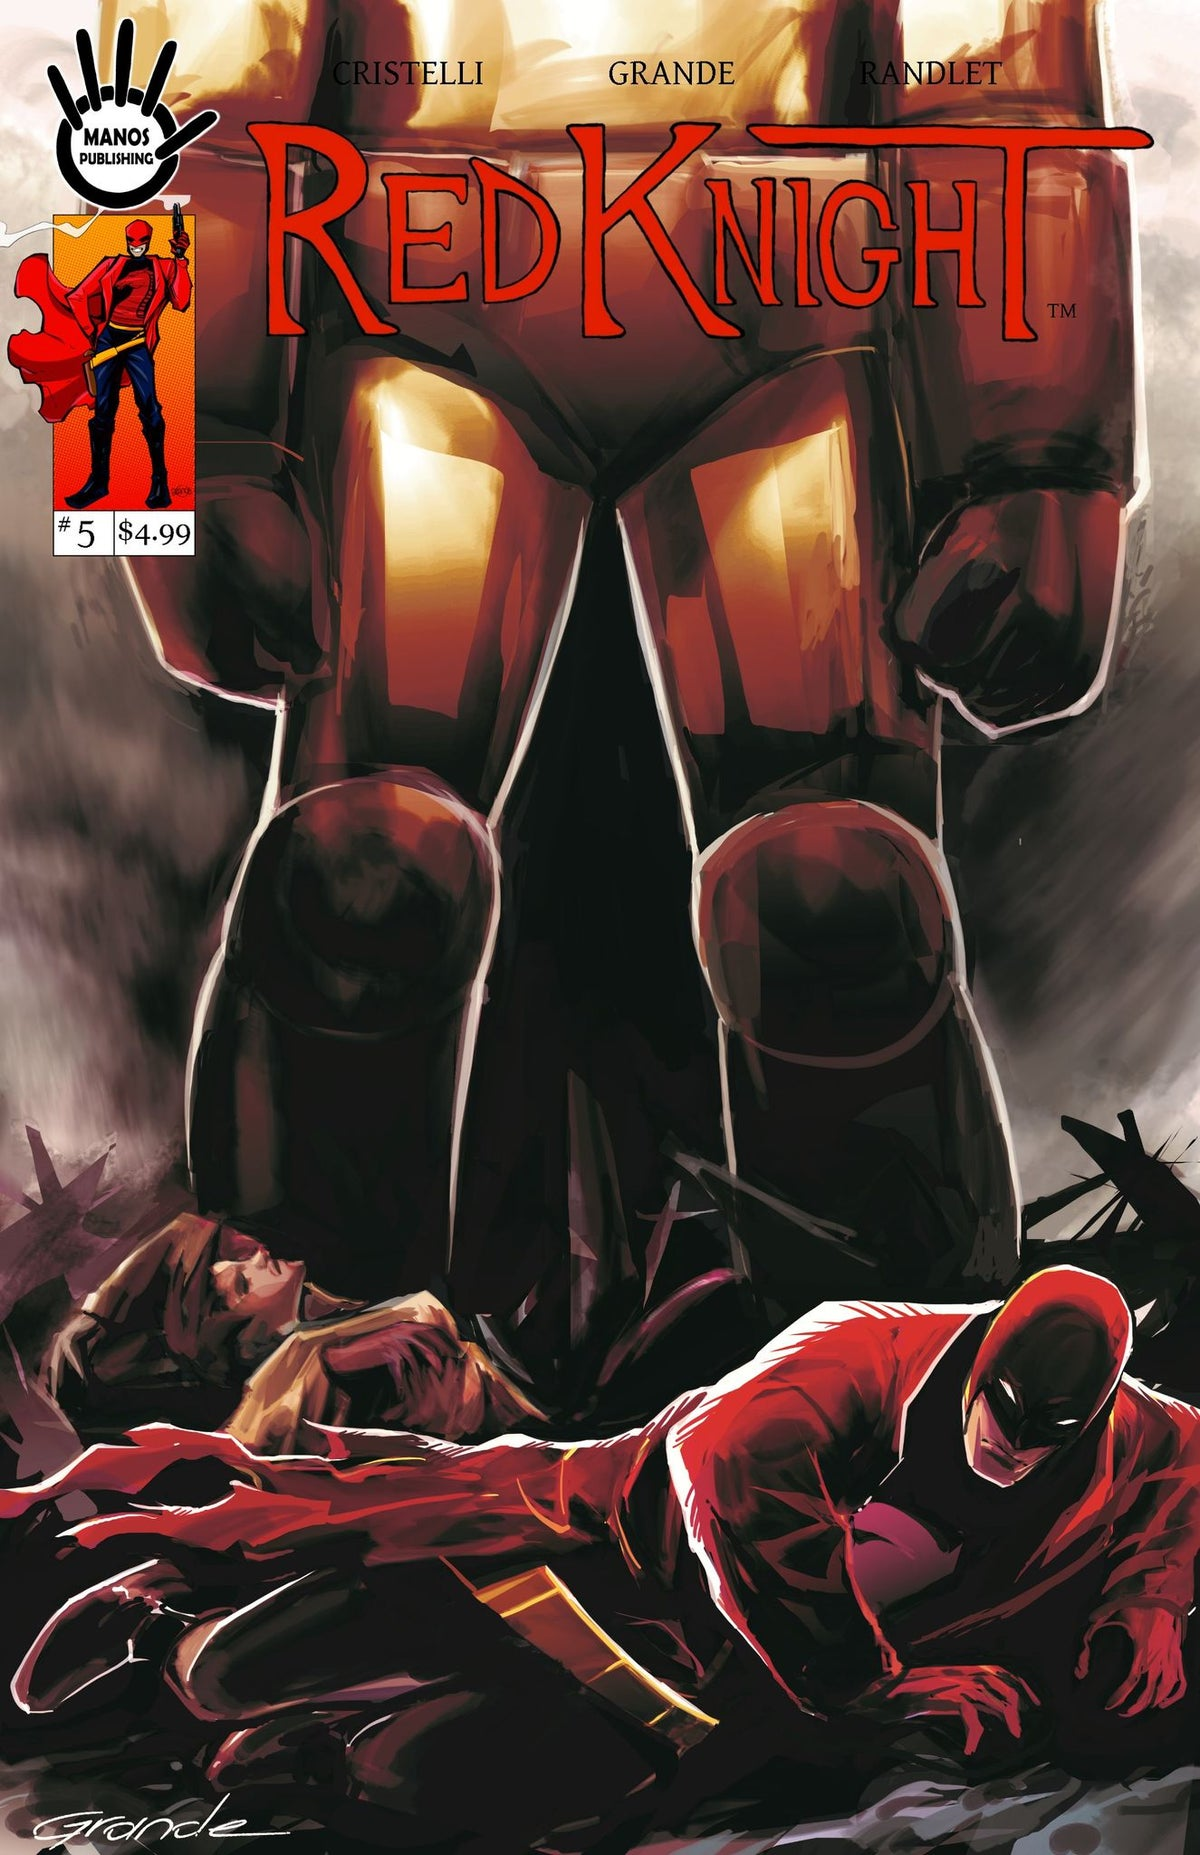 Image of Red Knight #5